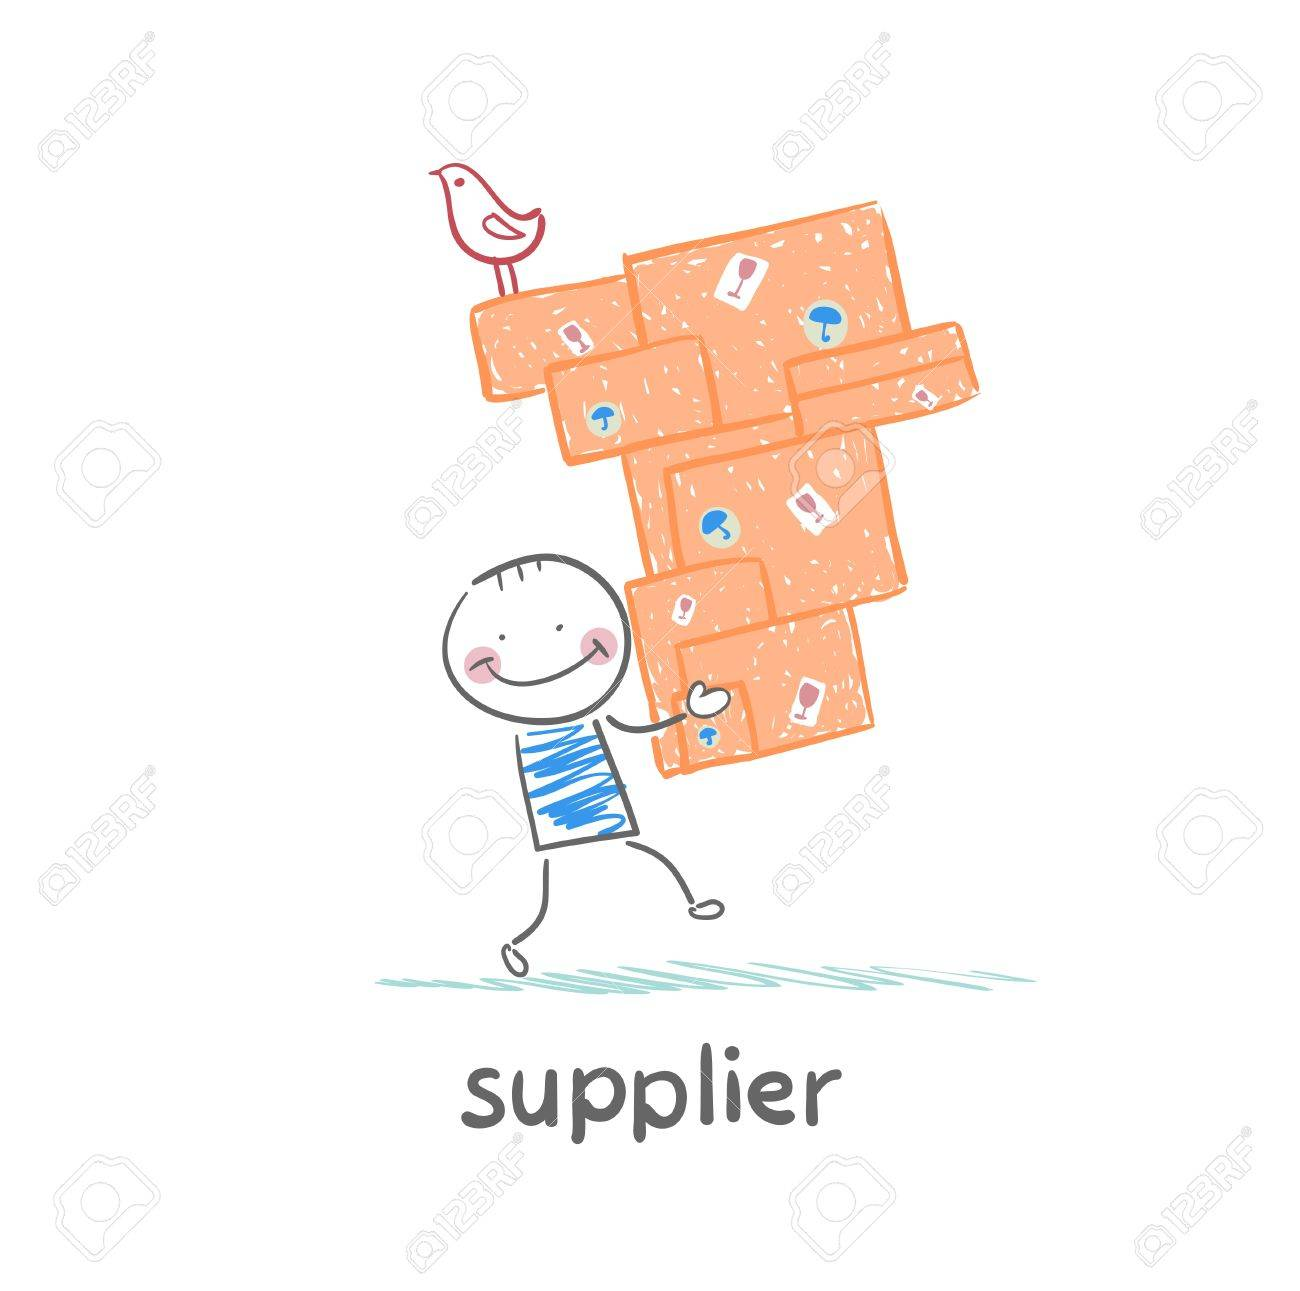 supplier carries goods Standard-Bild - 21984392